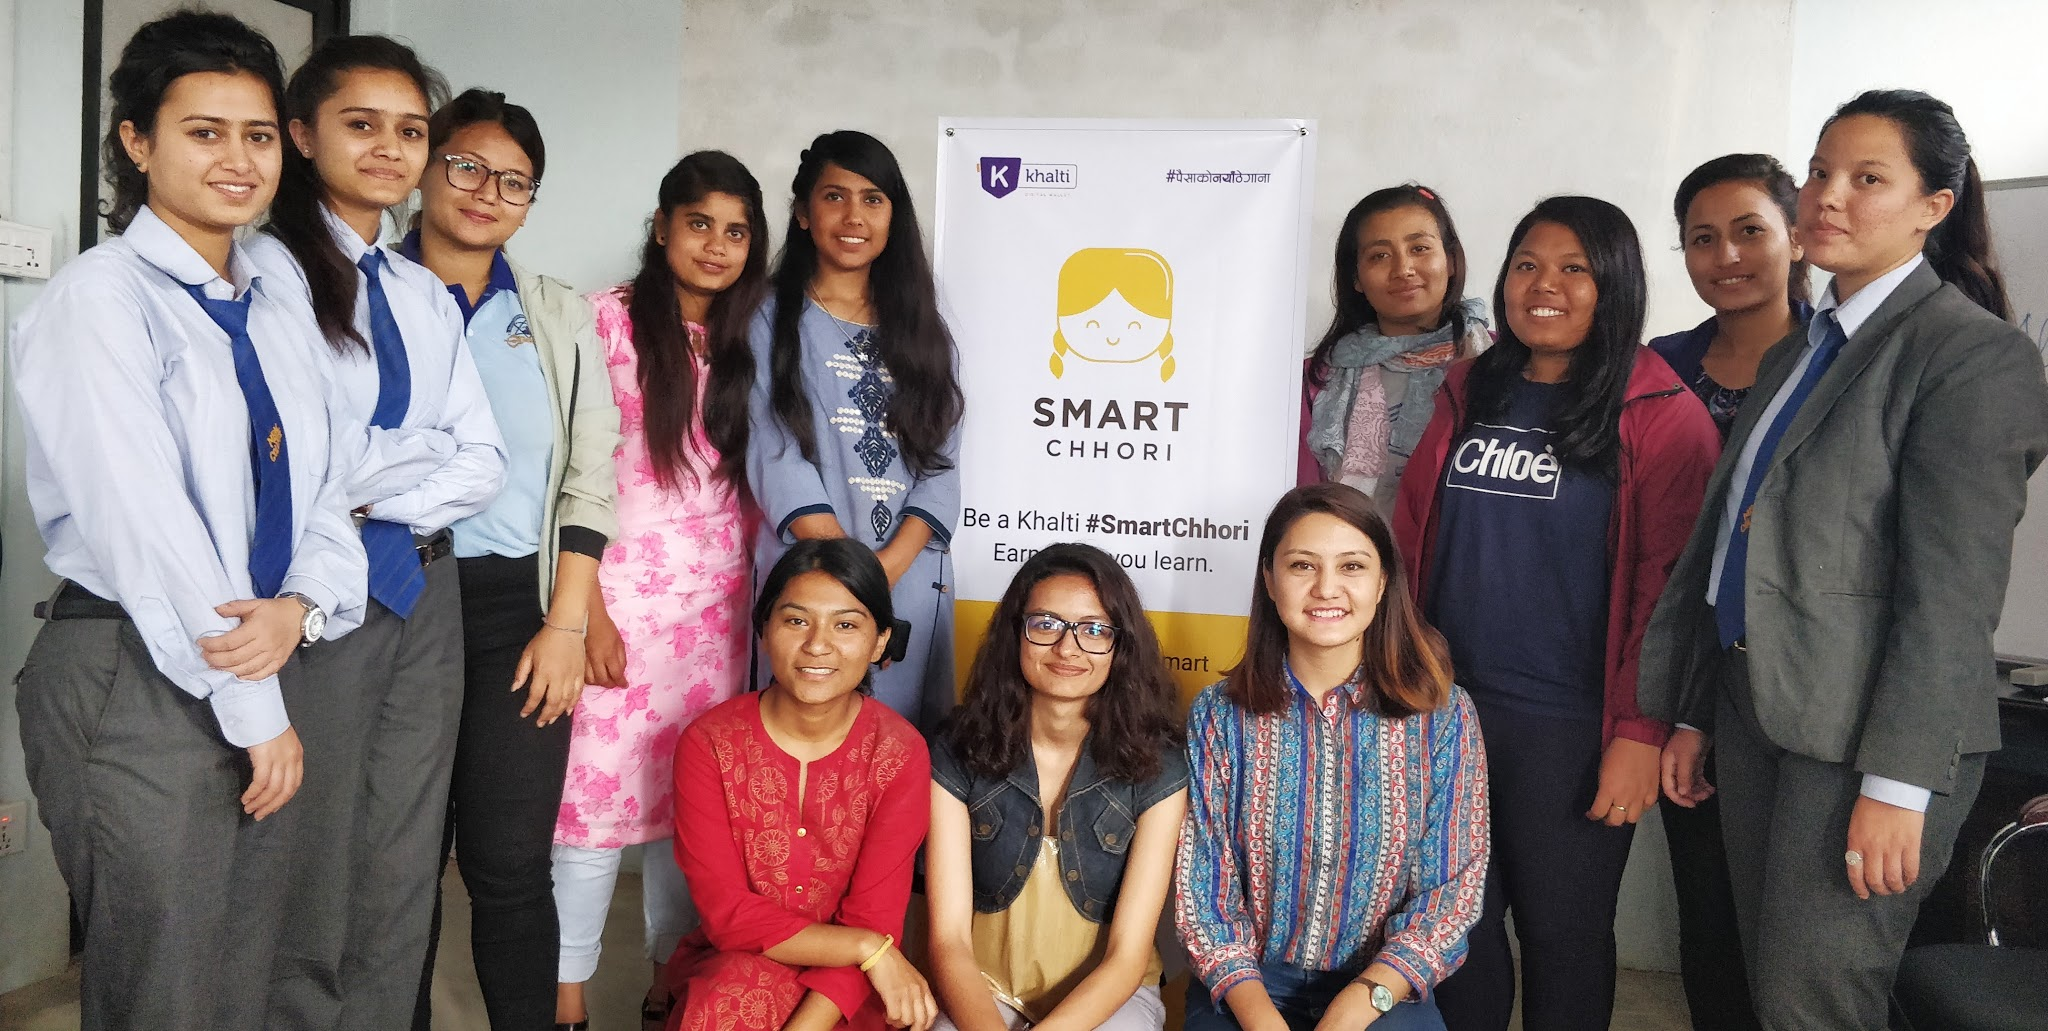 Khalti coming up with Smart Chhori campaign to bridge gender digital divide in Nepal